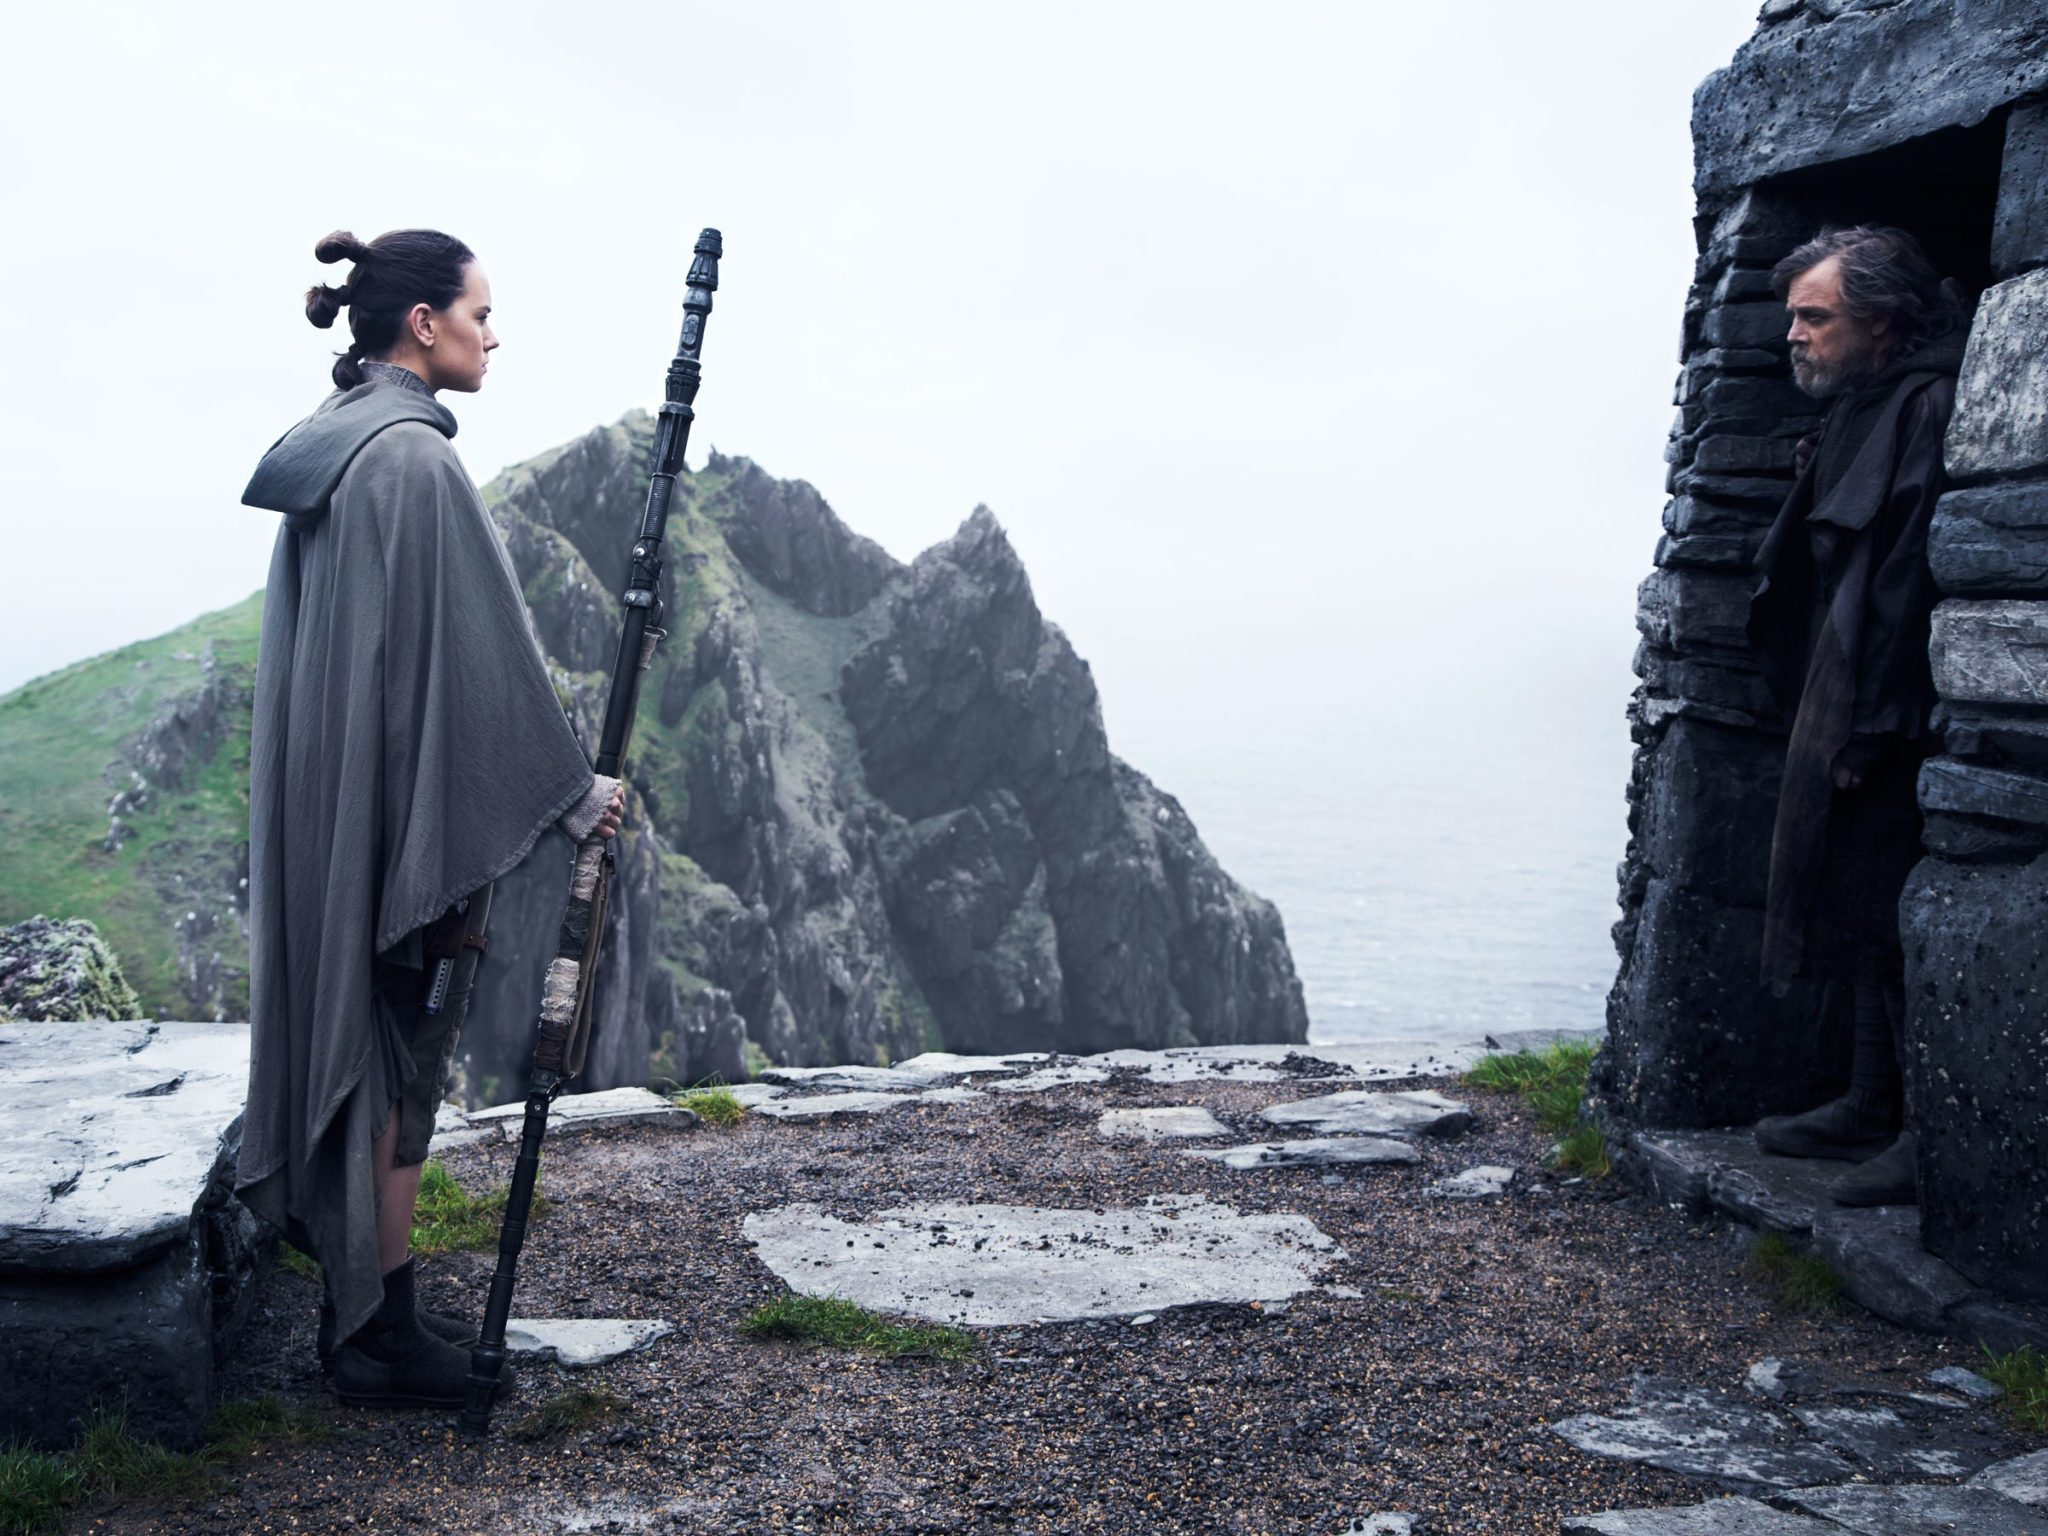 'Star Wars: The Last Jedi' is about maintaining hope in the darkest times